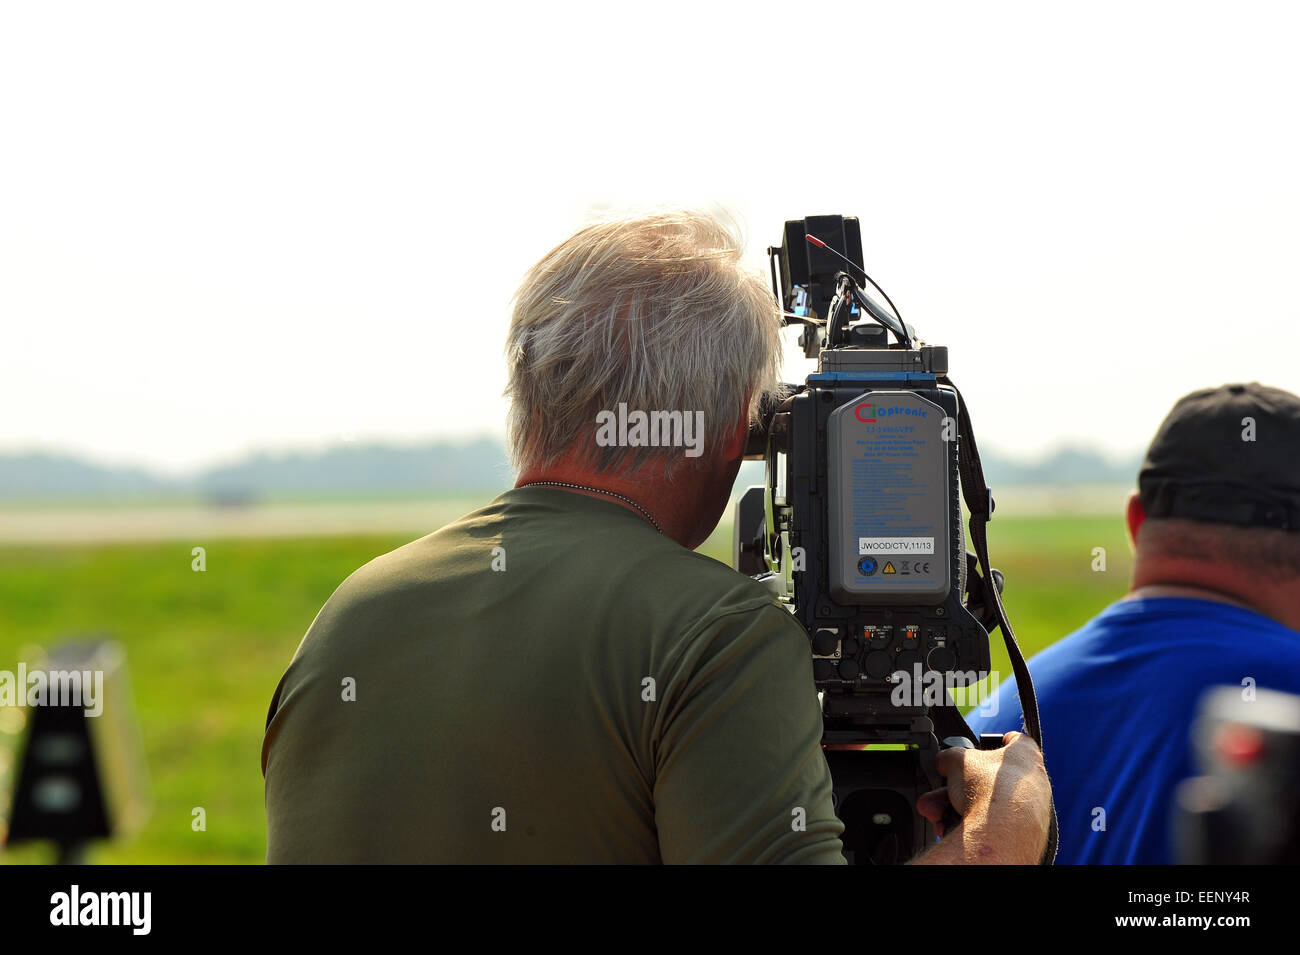 The back of a cameraman filming at an airport. - Stock Image